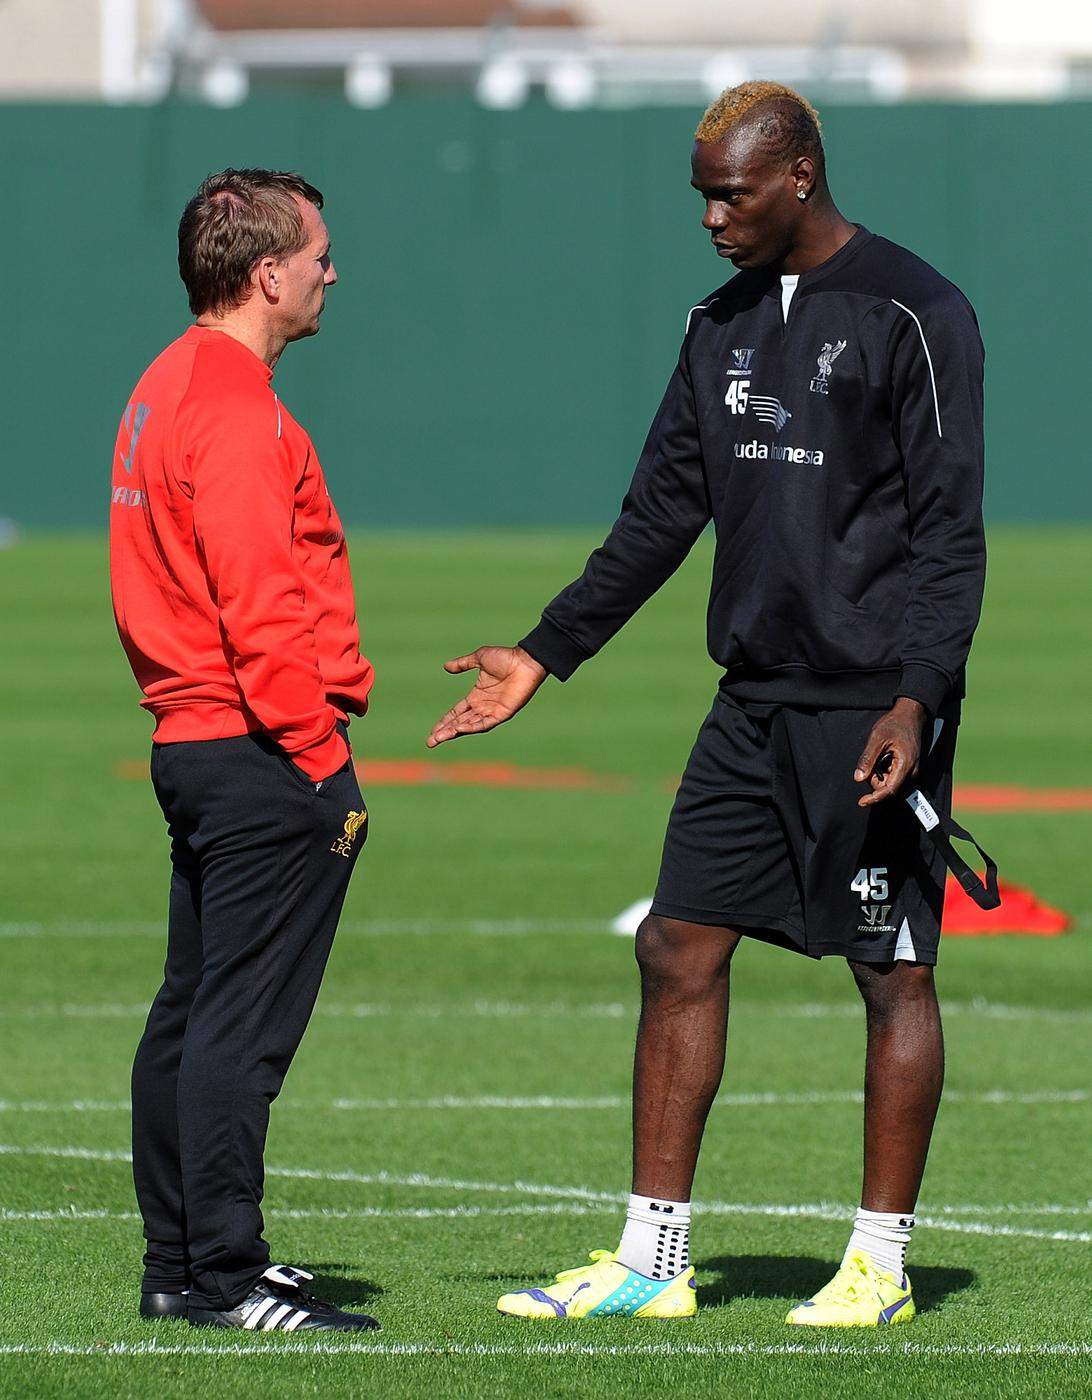 Mario Balotelli dropped for Liverpool's game against West Brom, fans produce mixed responses on Twitter